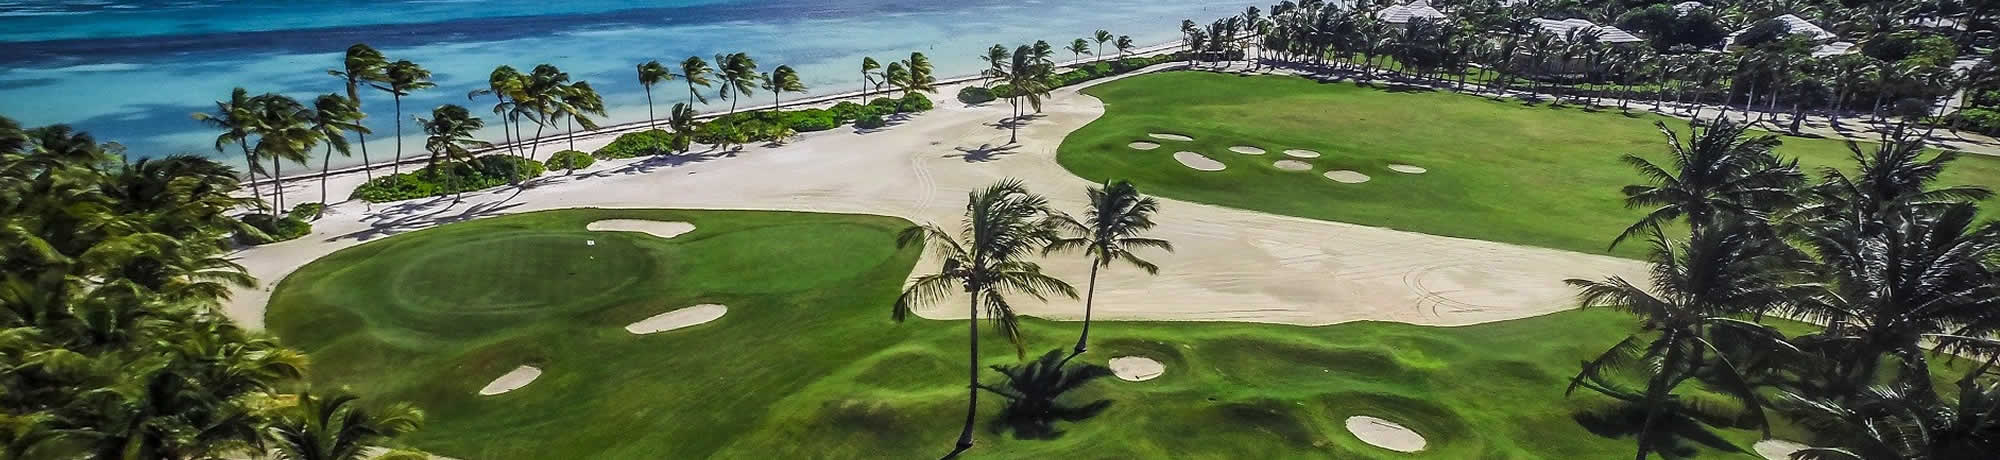 Dominican Republic Golf Association